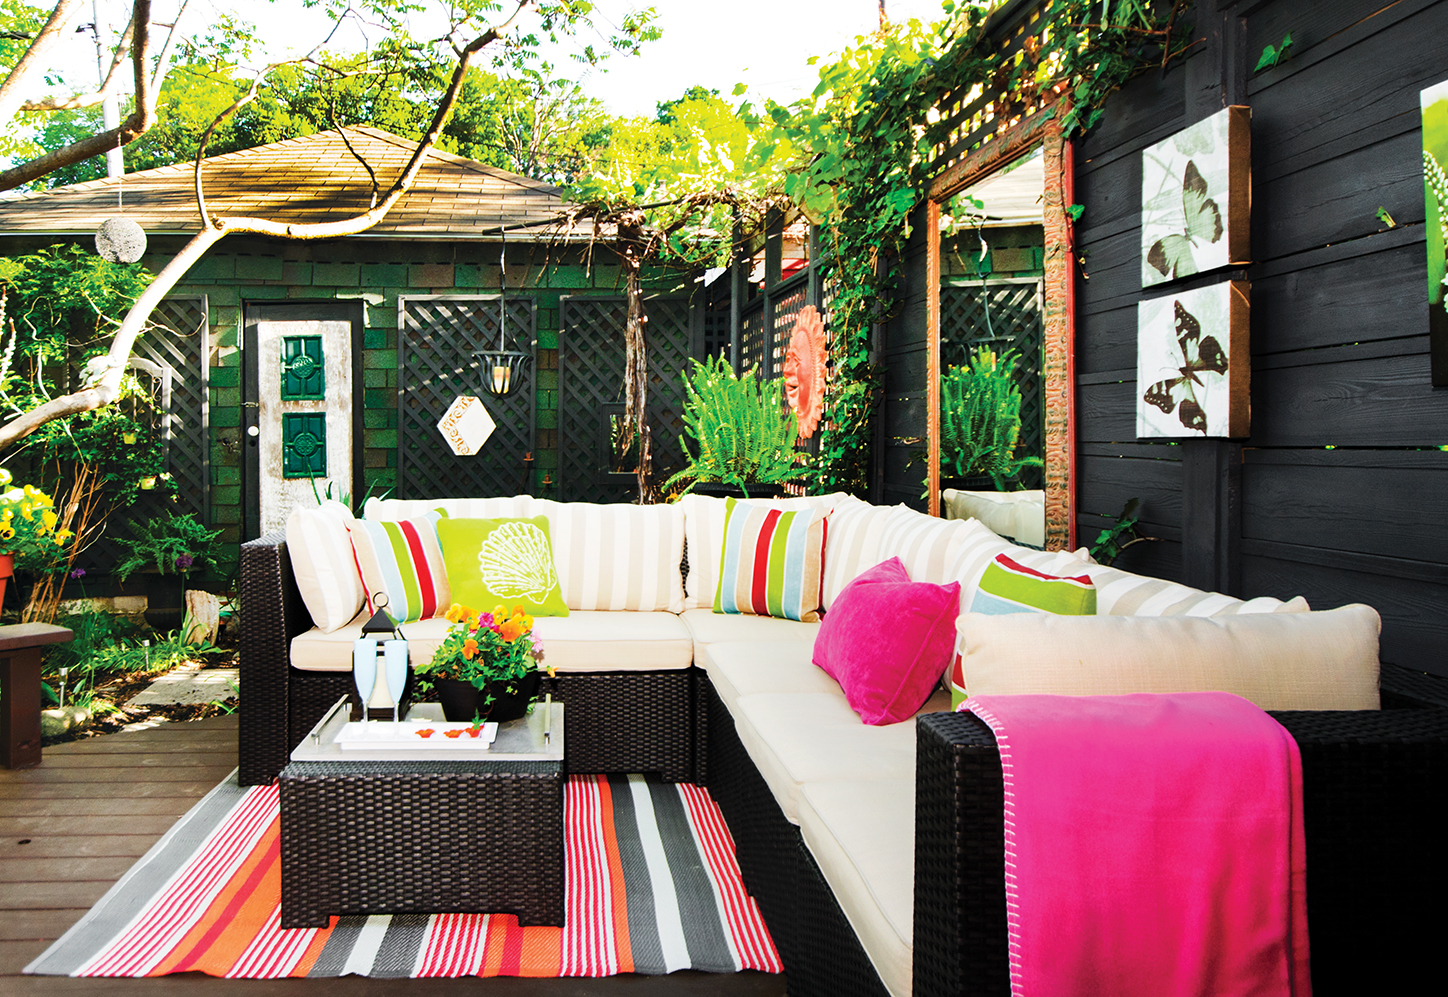 How to create an outdoor living space home trends magazine for Creating an outdoor living space